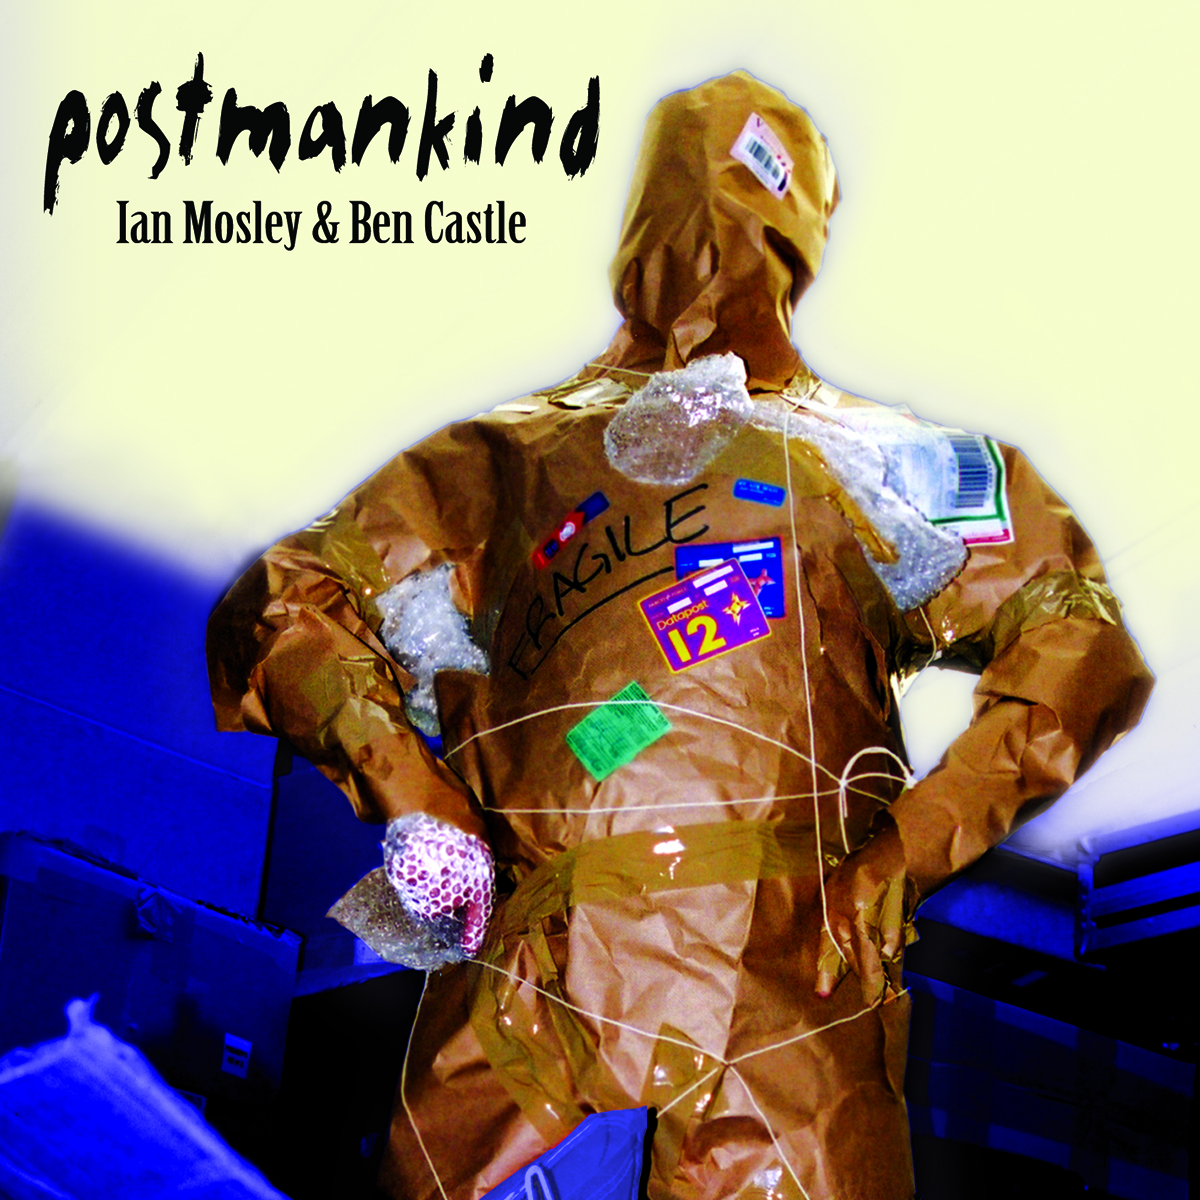 Postmankind 256 kbps Album Download